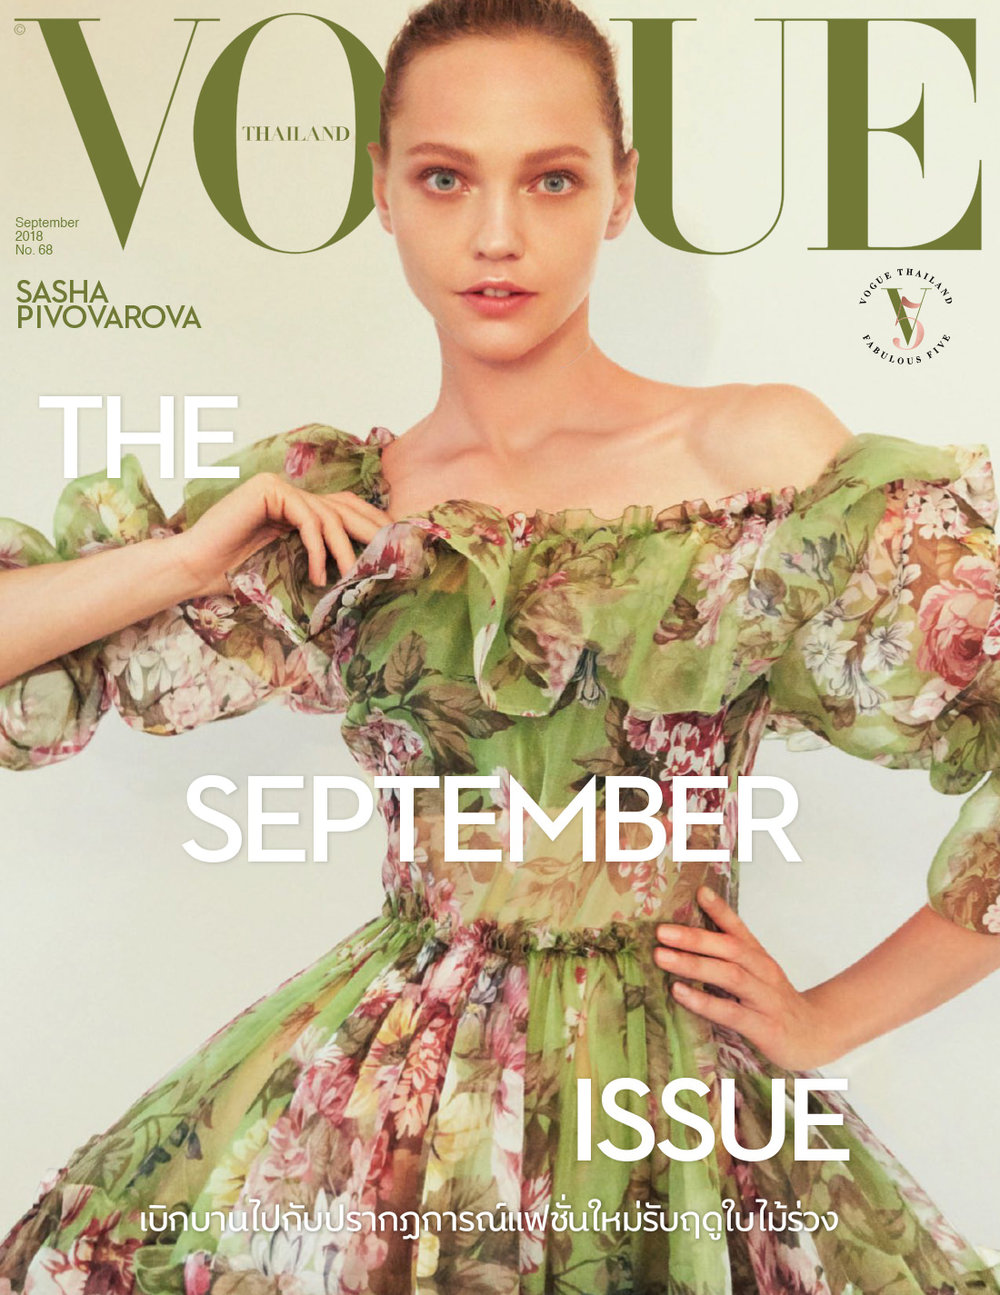 vogue-thailand-september-2018_01.jpg